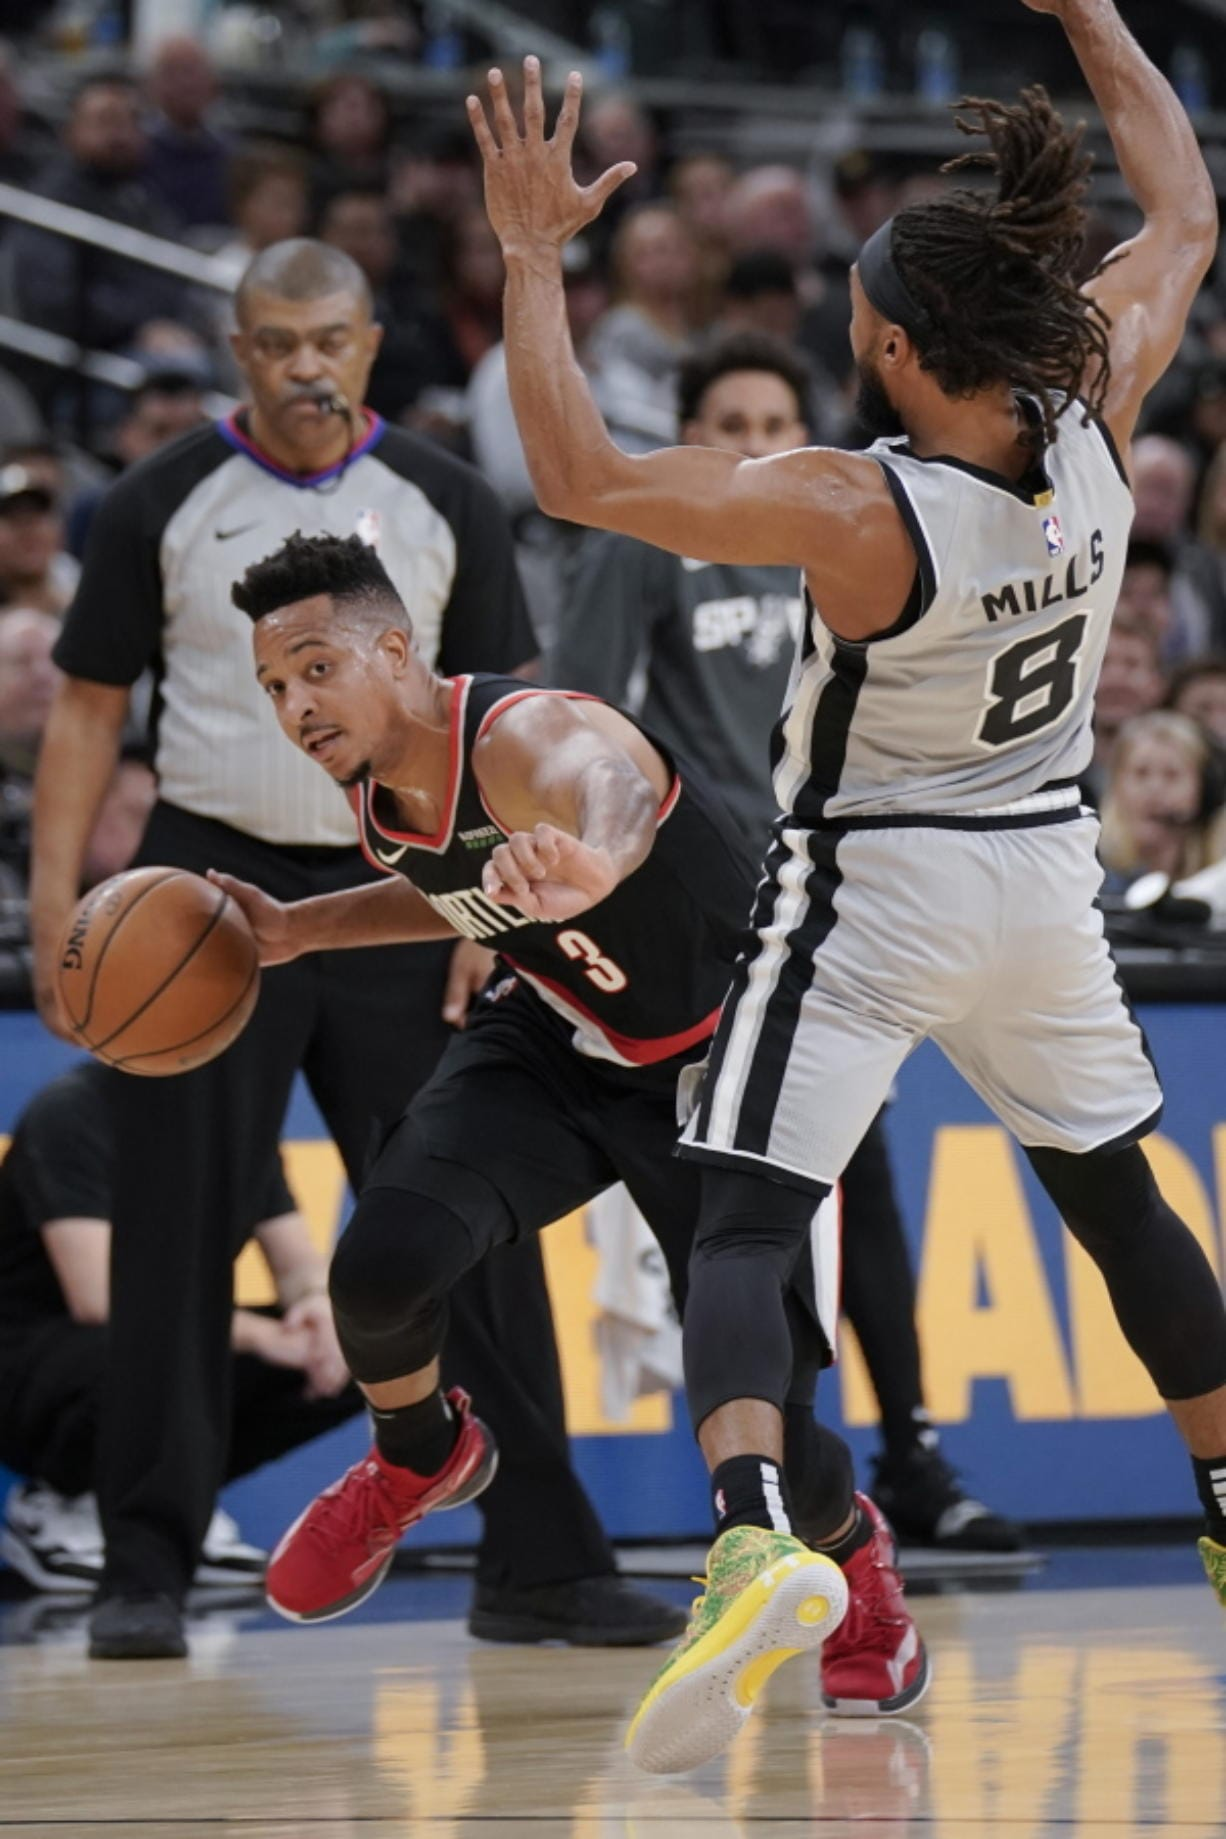 Portland Trail Blazers' C.J. McCollum (3) is called for an offensive foul after colliding with San Antonio Spurs' Patty Mills during the first half of an NBA basketball game, Saturday, Nov. 16, 2019, in San Antonio.